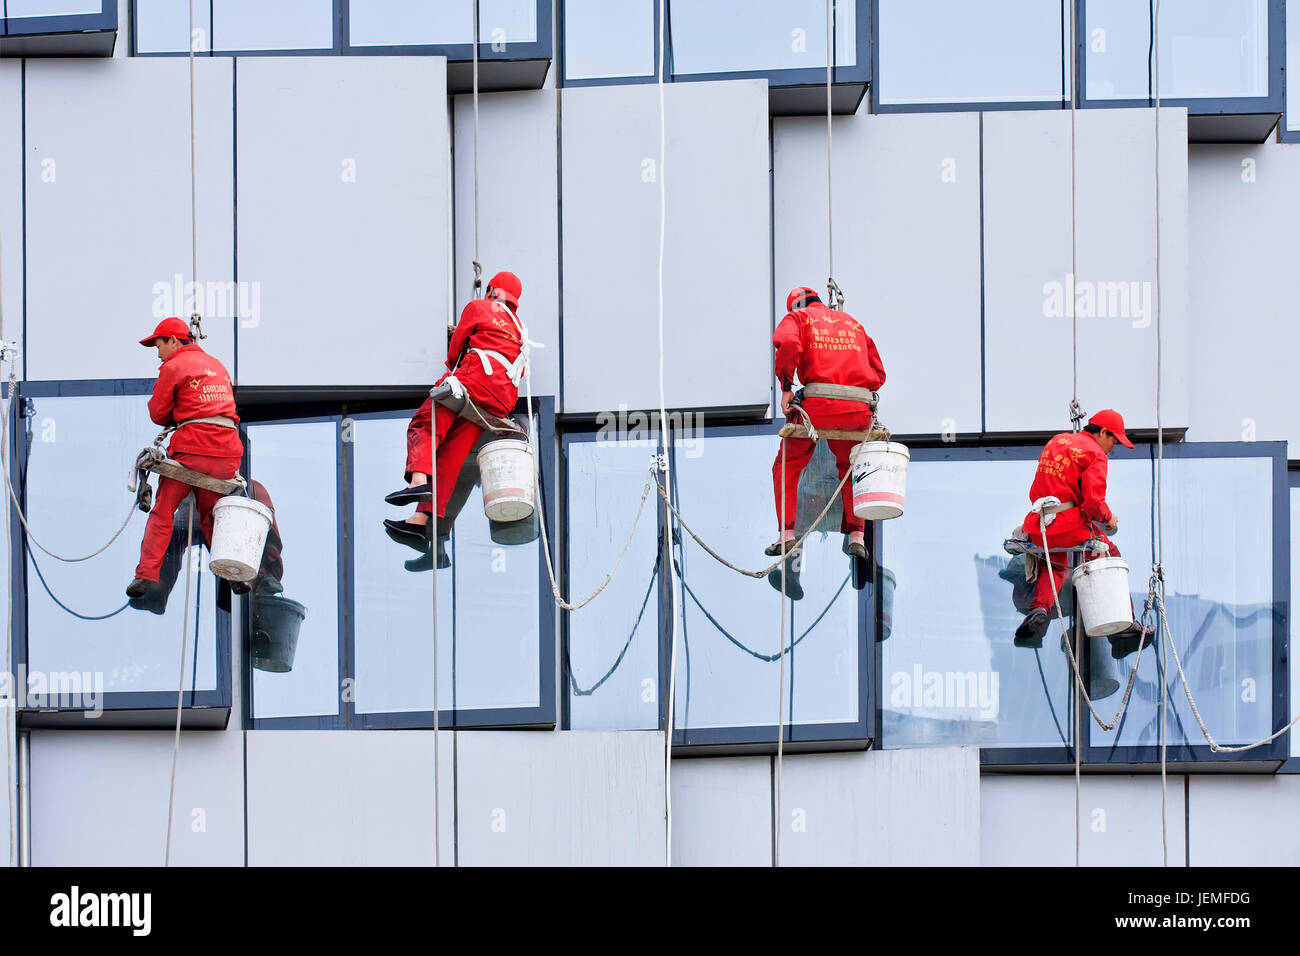 BEIJING - APRIL 28, 2009. Window cleaners at work. They are known as spider-men because they entrust their lives - Stock Image